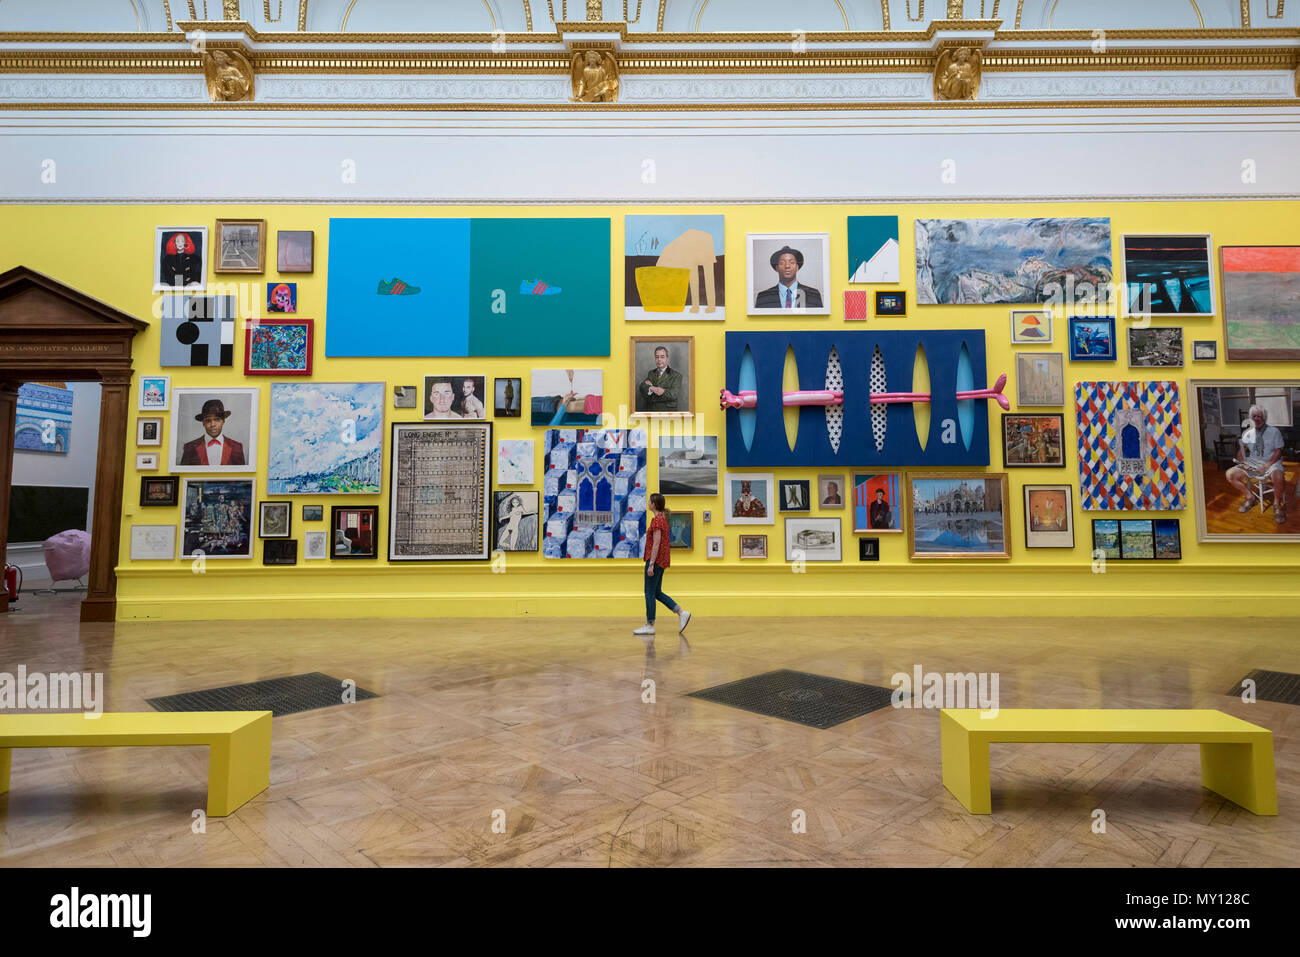 London, UK.  5 June 2018. A staff member walks amidst artworks in a vividly yellow painted gallery at the preview of the 250th Summer Exhibition at the Royal Academy of Arts in Piccadilly, which has been co-ordinated by Grayson Perry RA this year.  Running concurrently, is The Great Spectacle, featuring highlights from the past 250 years.  Both shows run 12 June to 19 August 2018.  Credit: Stephen Chung / Alamy Live News - Stock Image